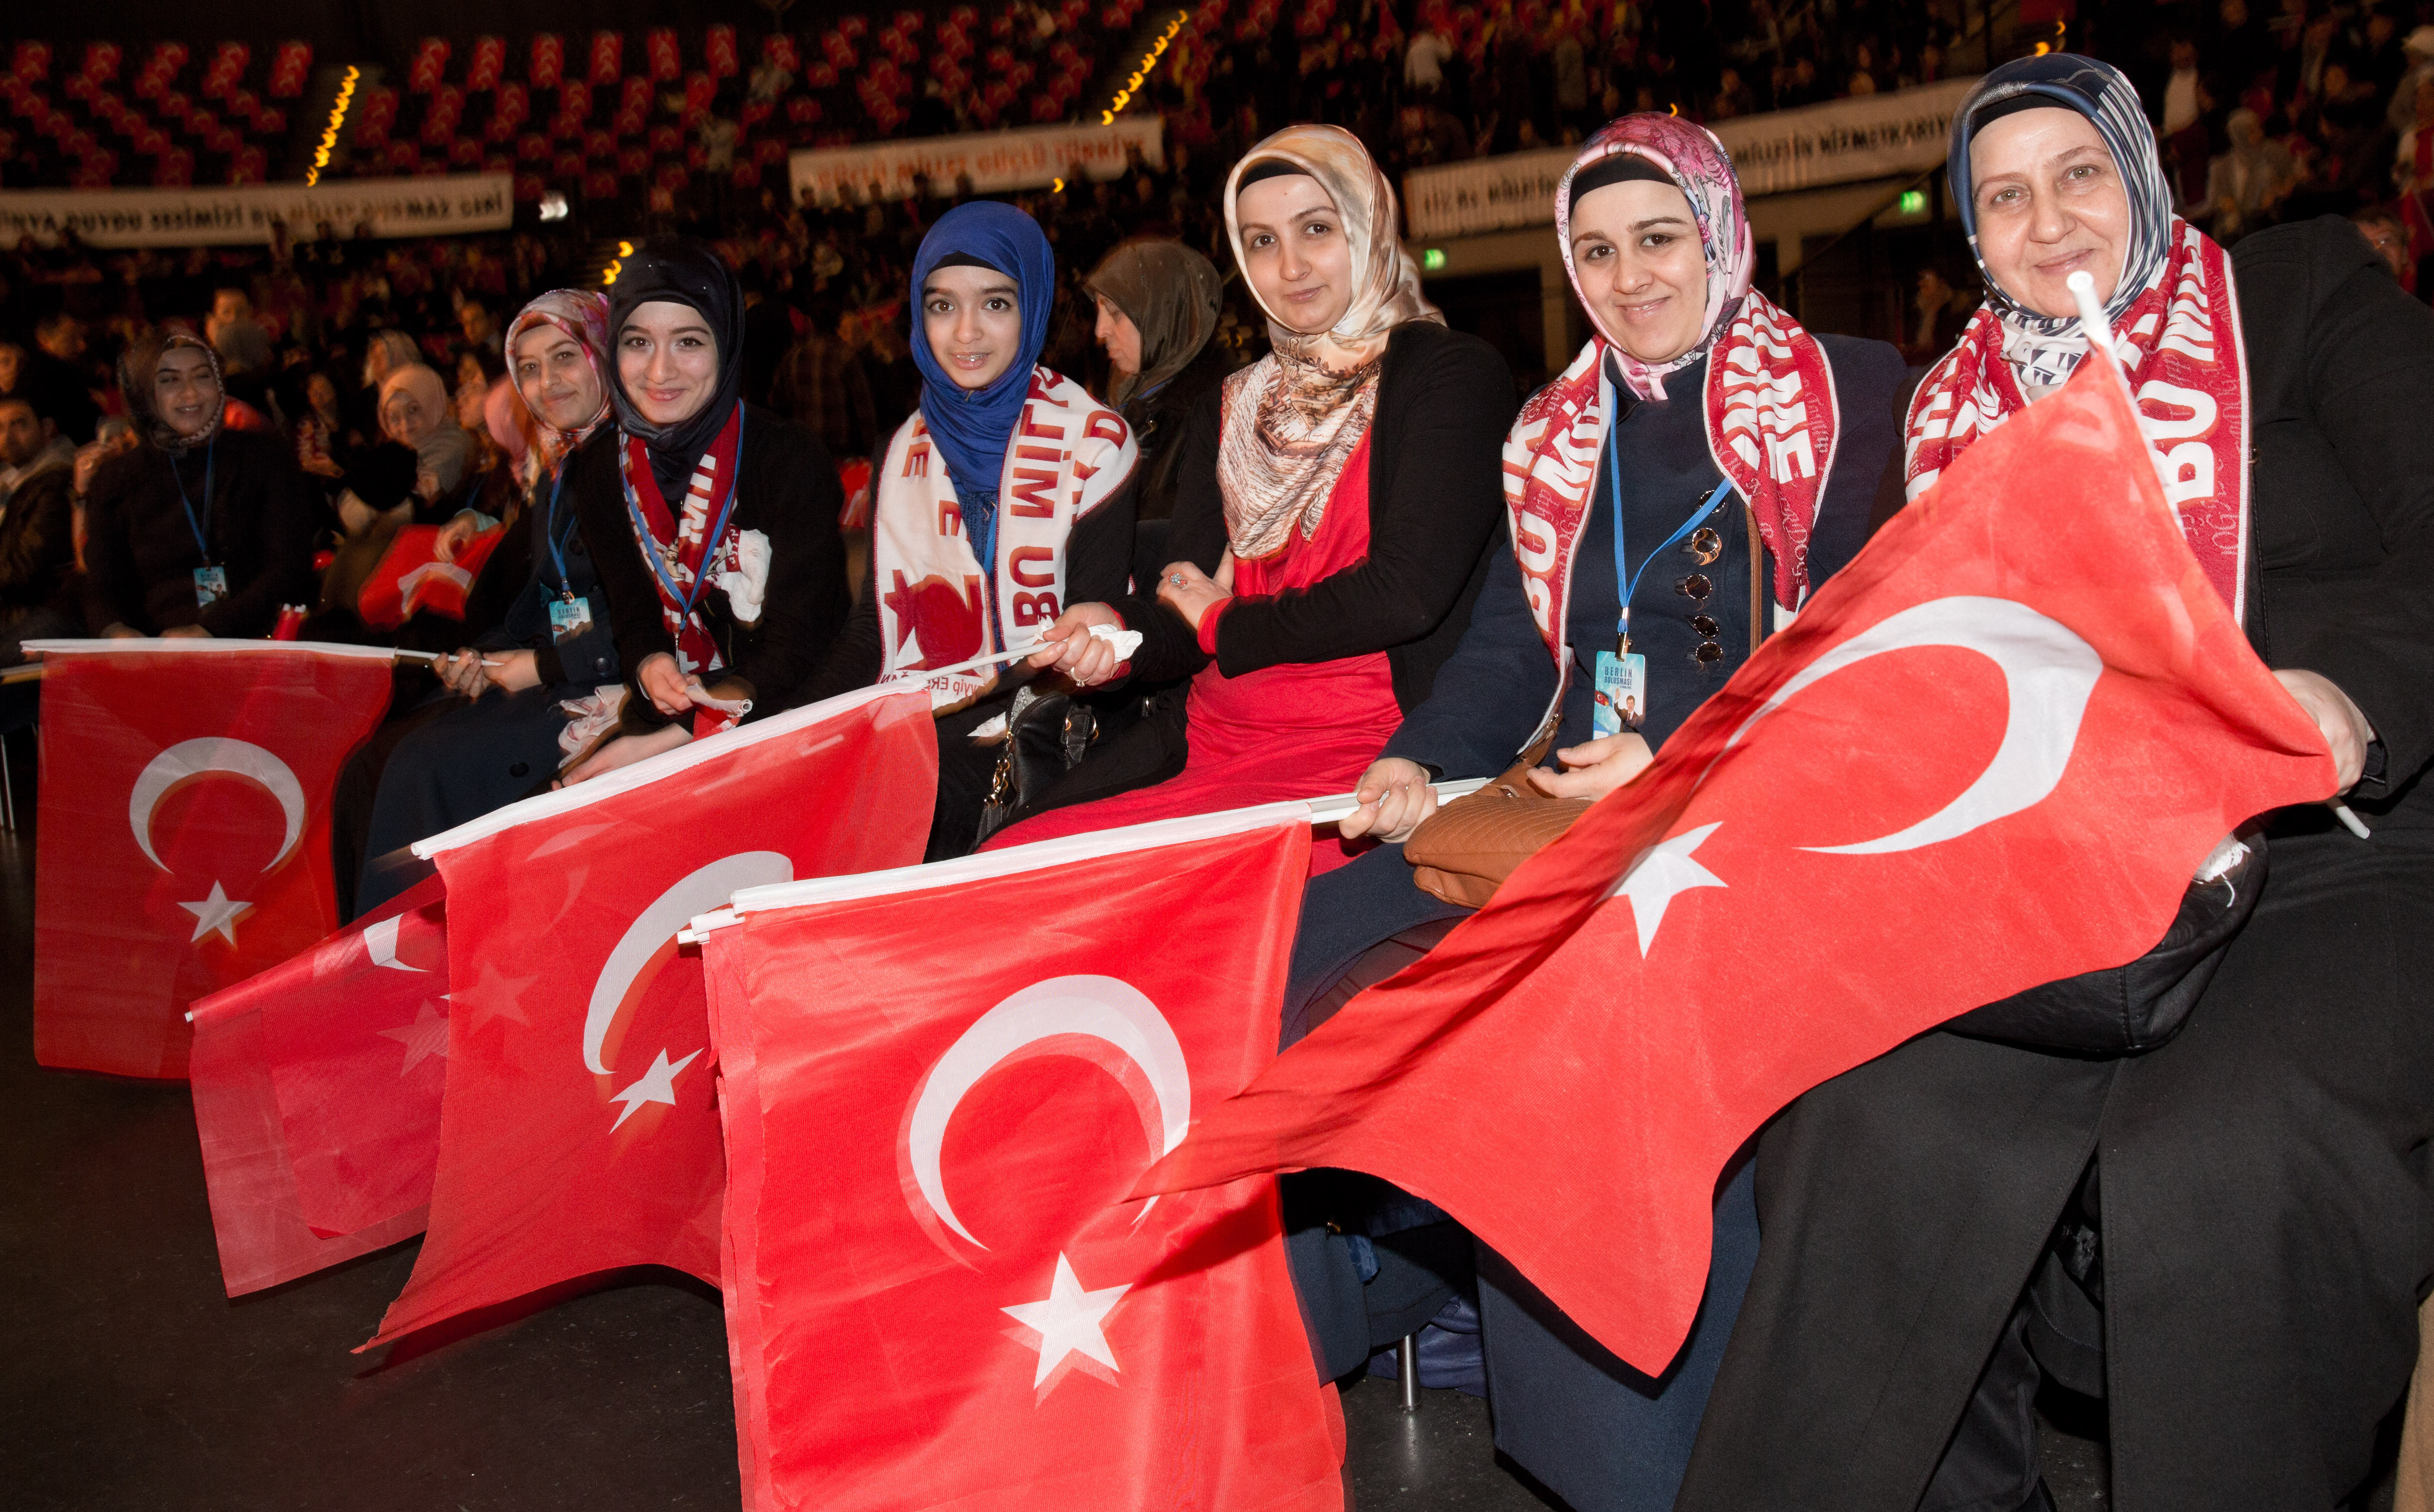 Members of Turkish community holding Turkish flags listen to a speech of Turkish Prime Minister in Tempodrom in Berlin during his state visit. (File)